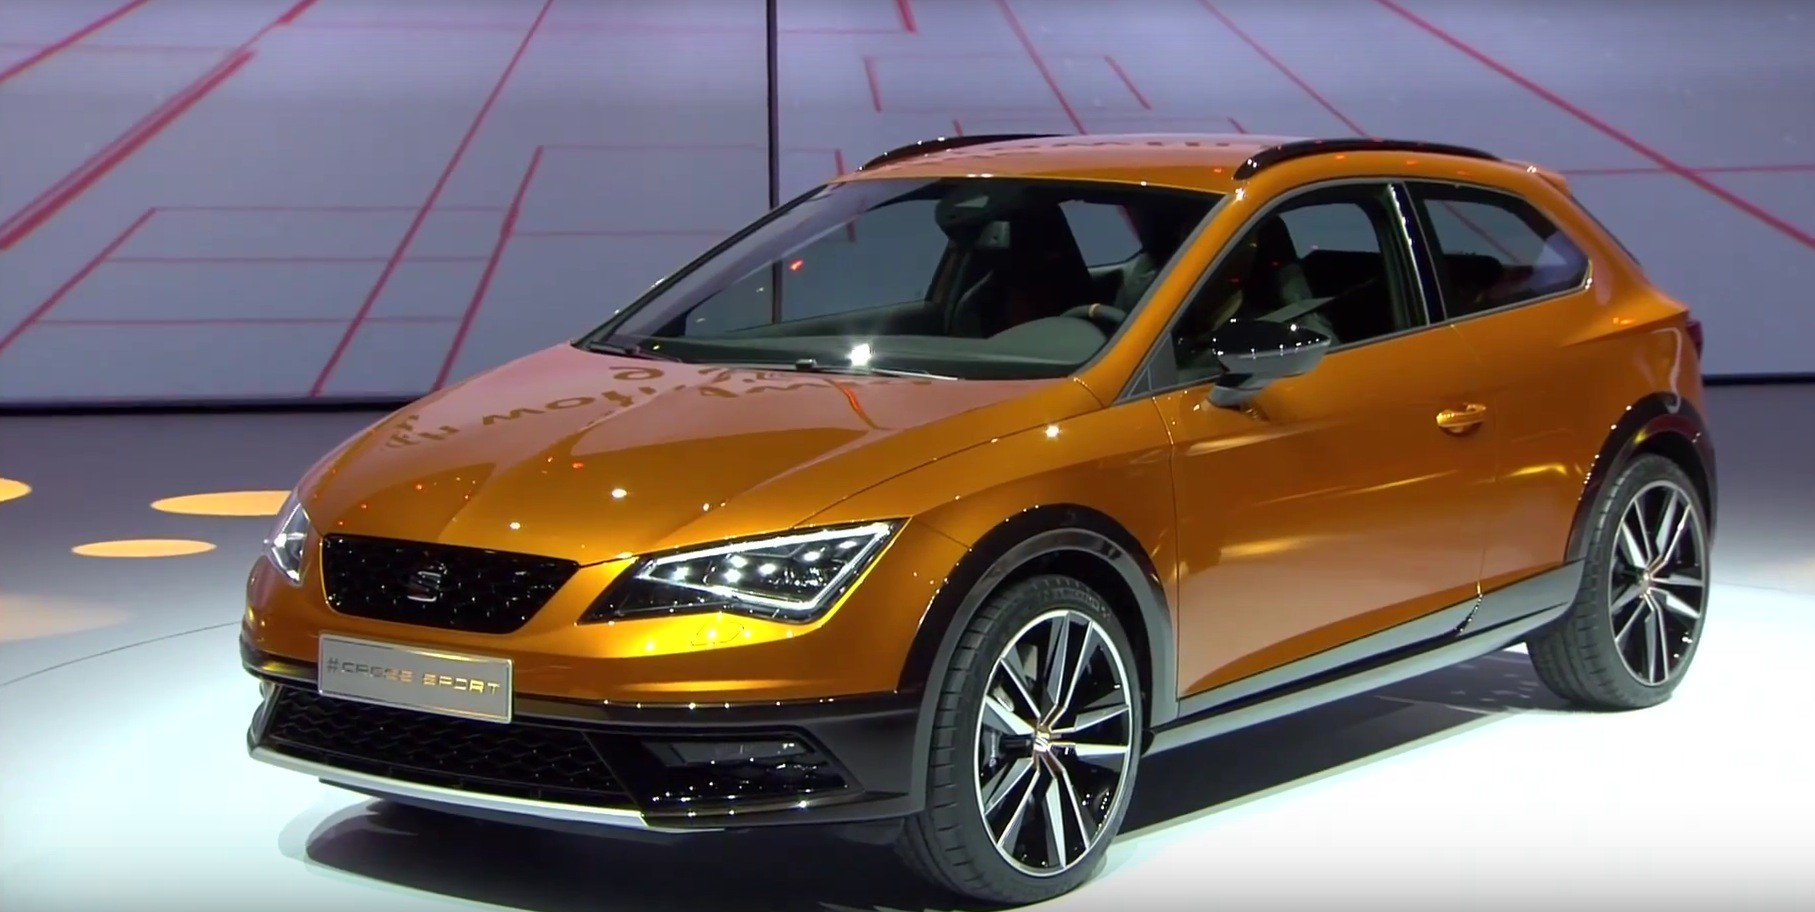 seat leon cross sport is a taller golf r at frankfurt motor show 2015 video live photos. Black Bedroom Furniture Sets. Home Design Ideas